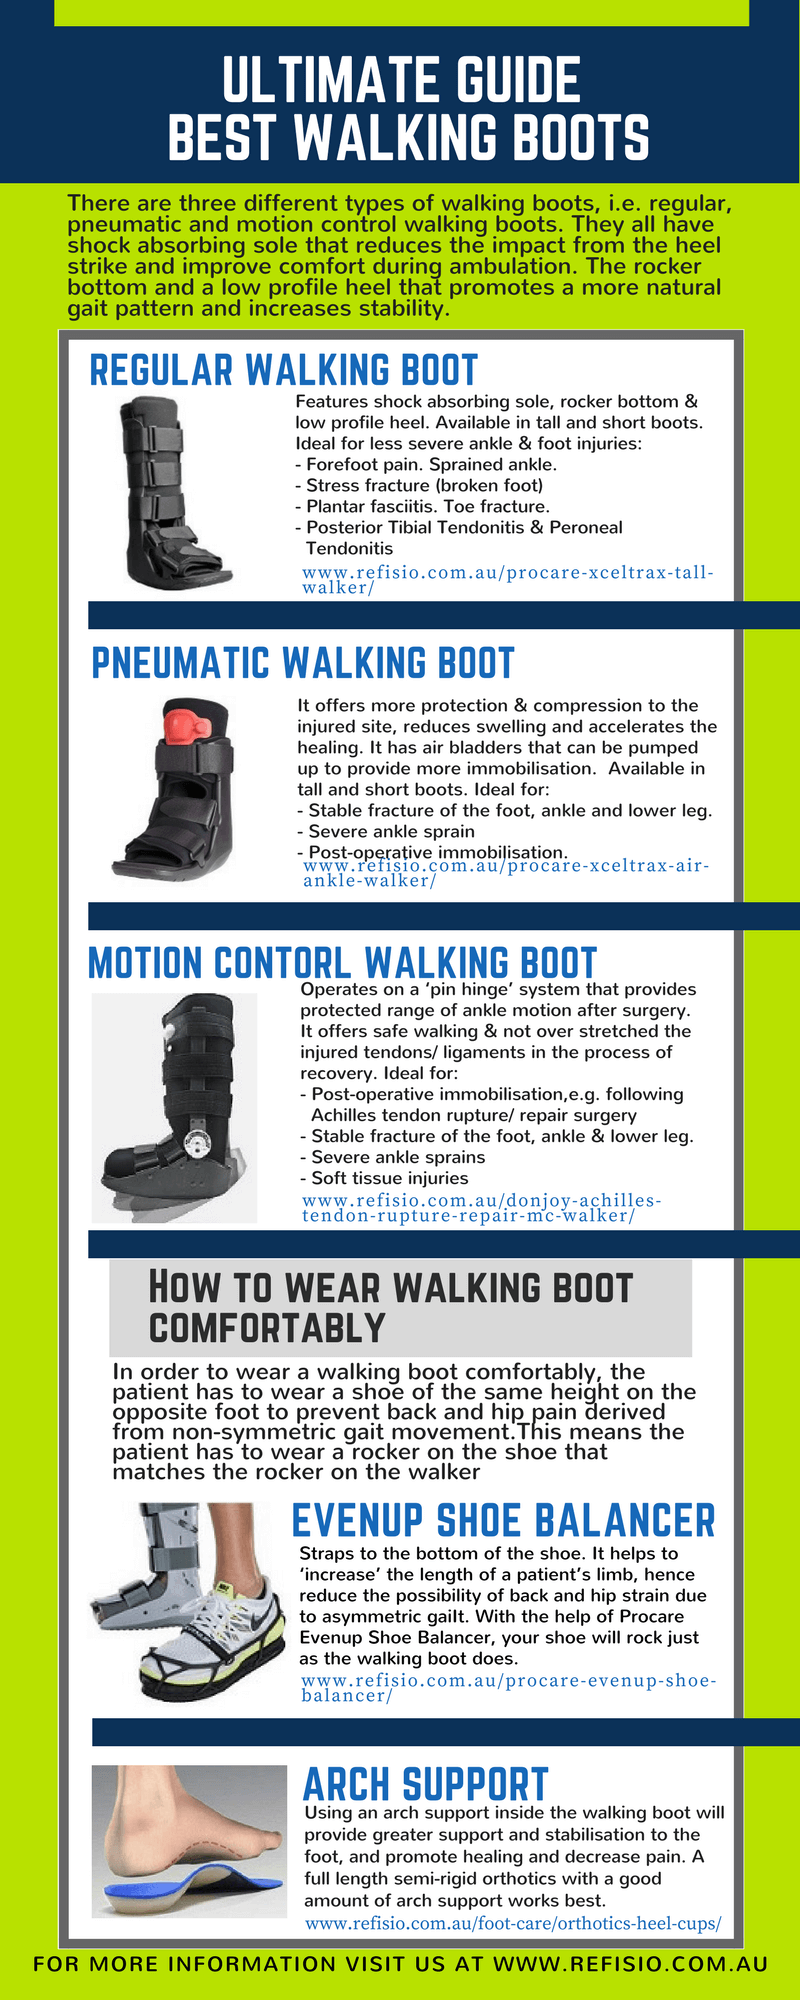 Ultimate Guide Best Walking Boots For Ankle Foot Injuries Foot Injury Walking Boots Broken Ankle Recovery